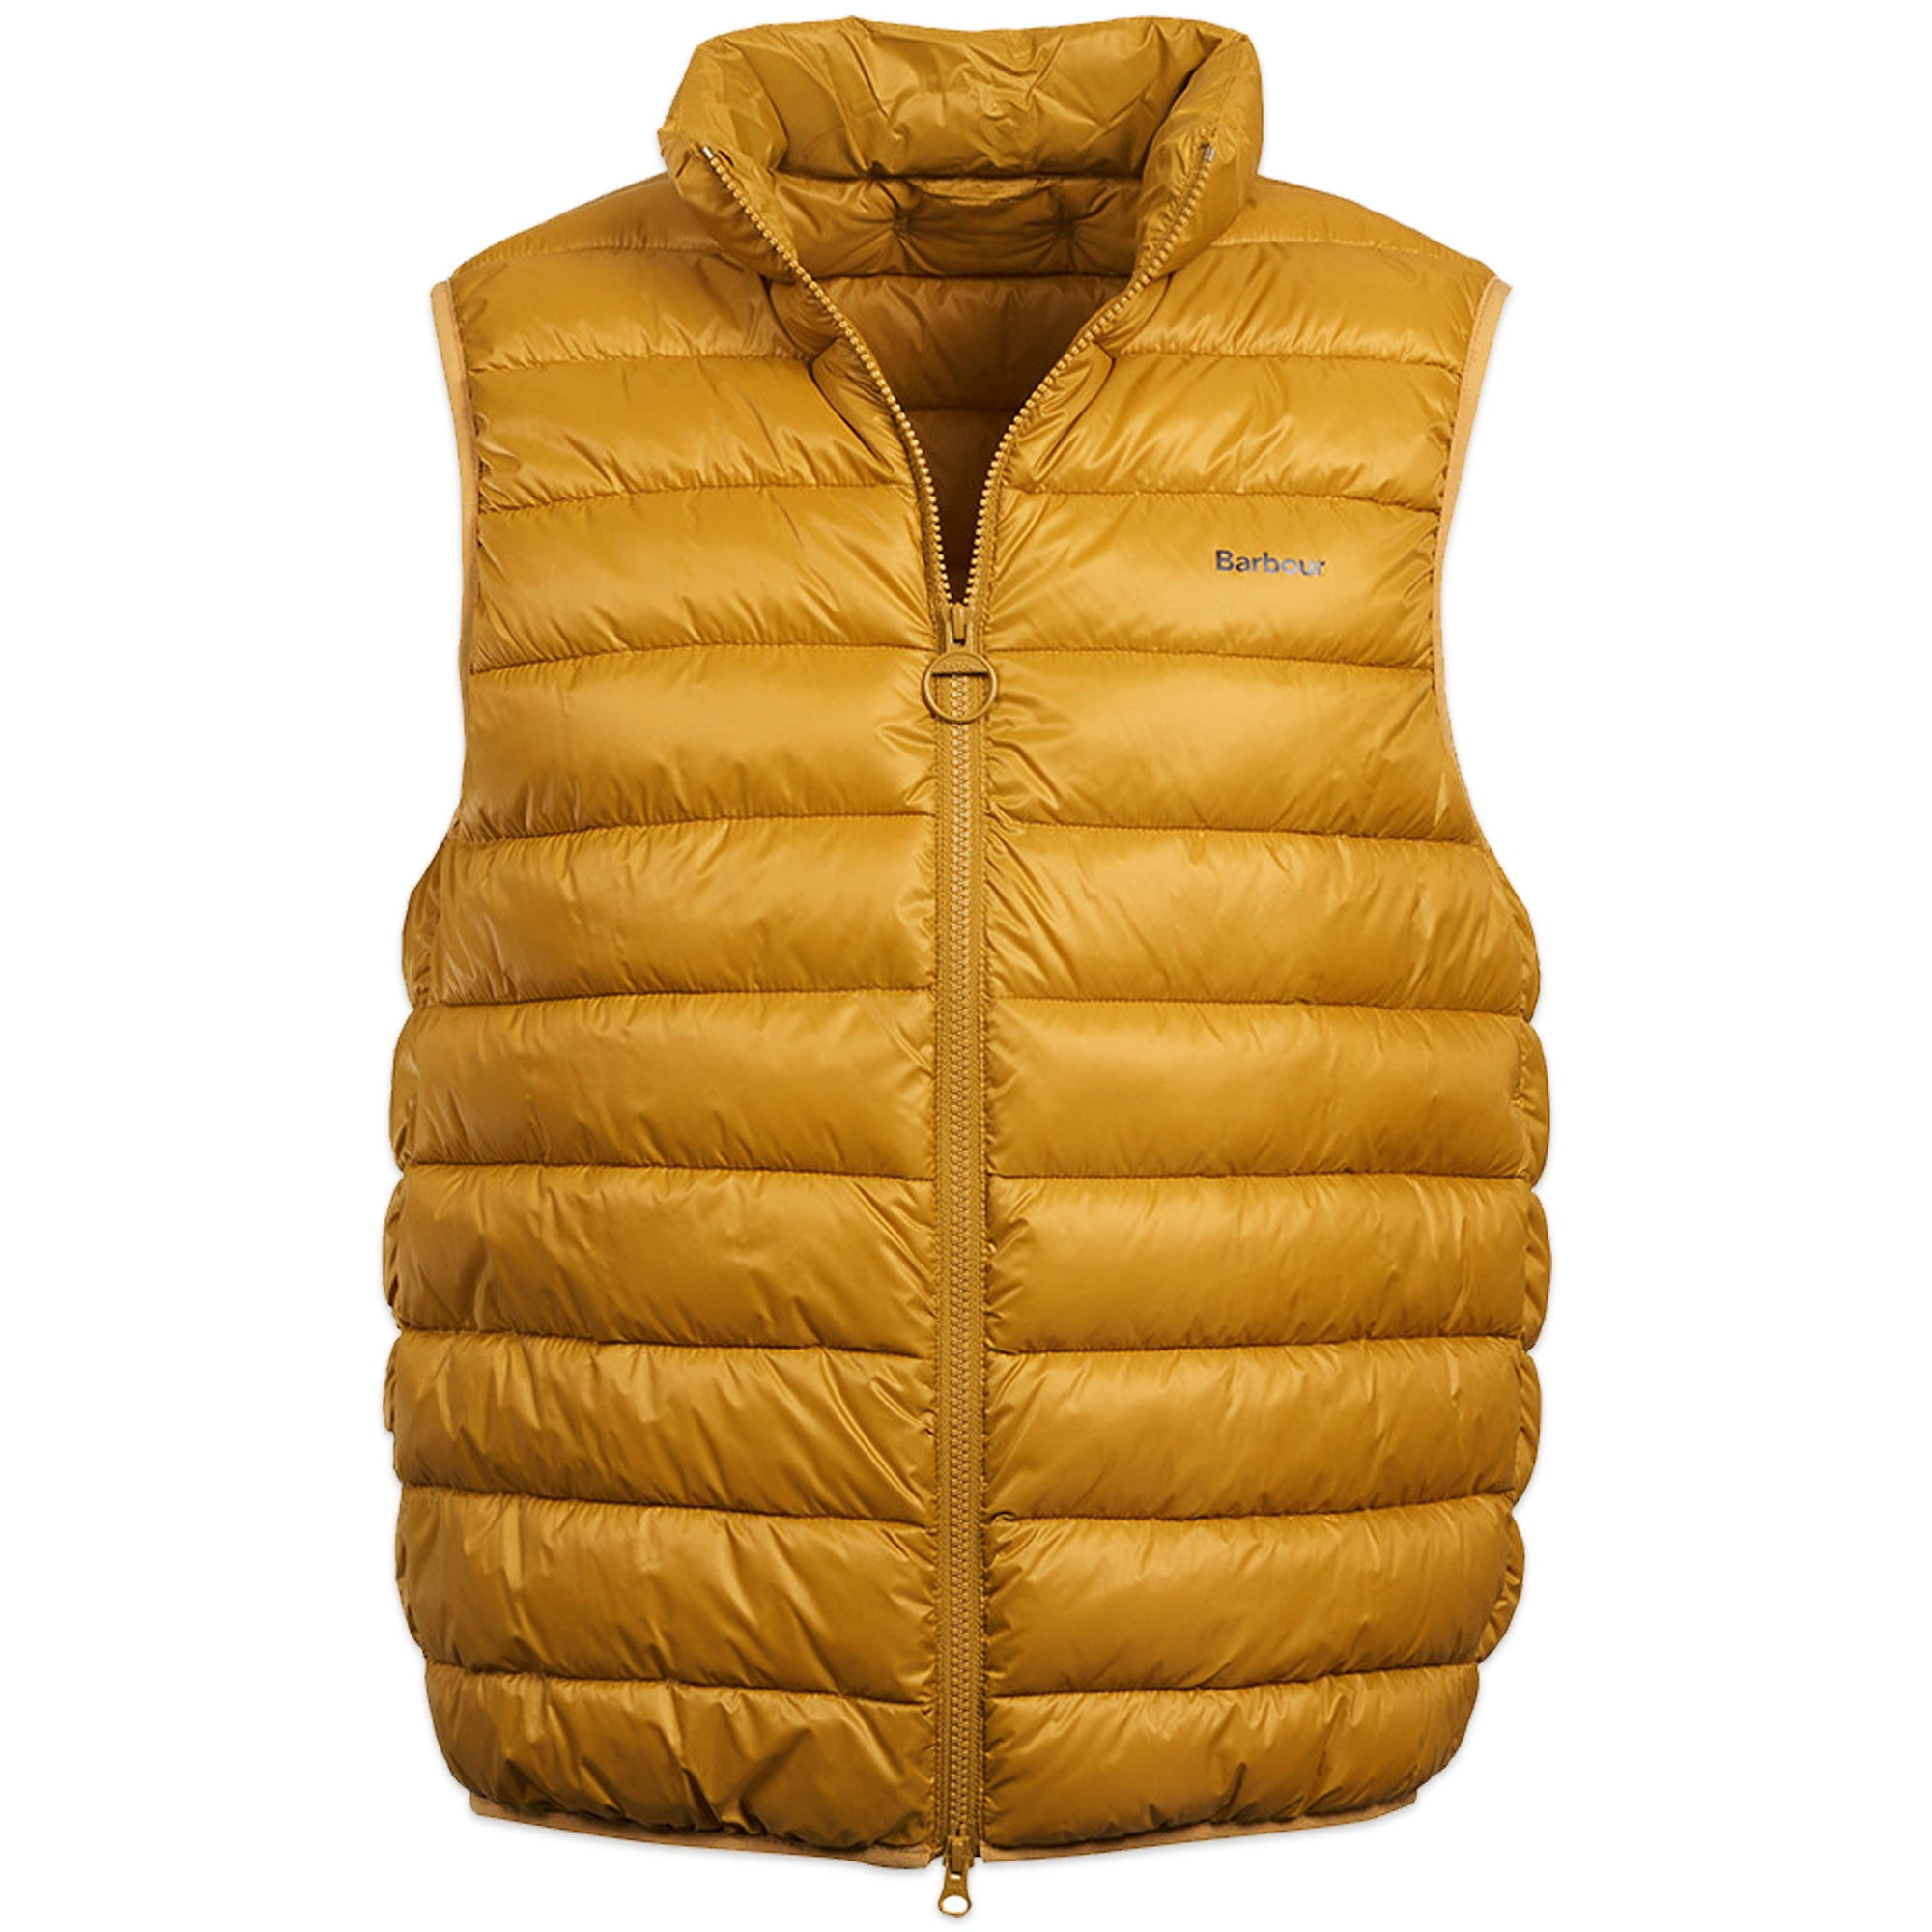 222dc568a5a0c Barbour Bretby Gillet - Lunar Yellow | Arena Menswear